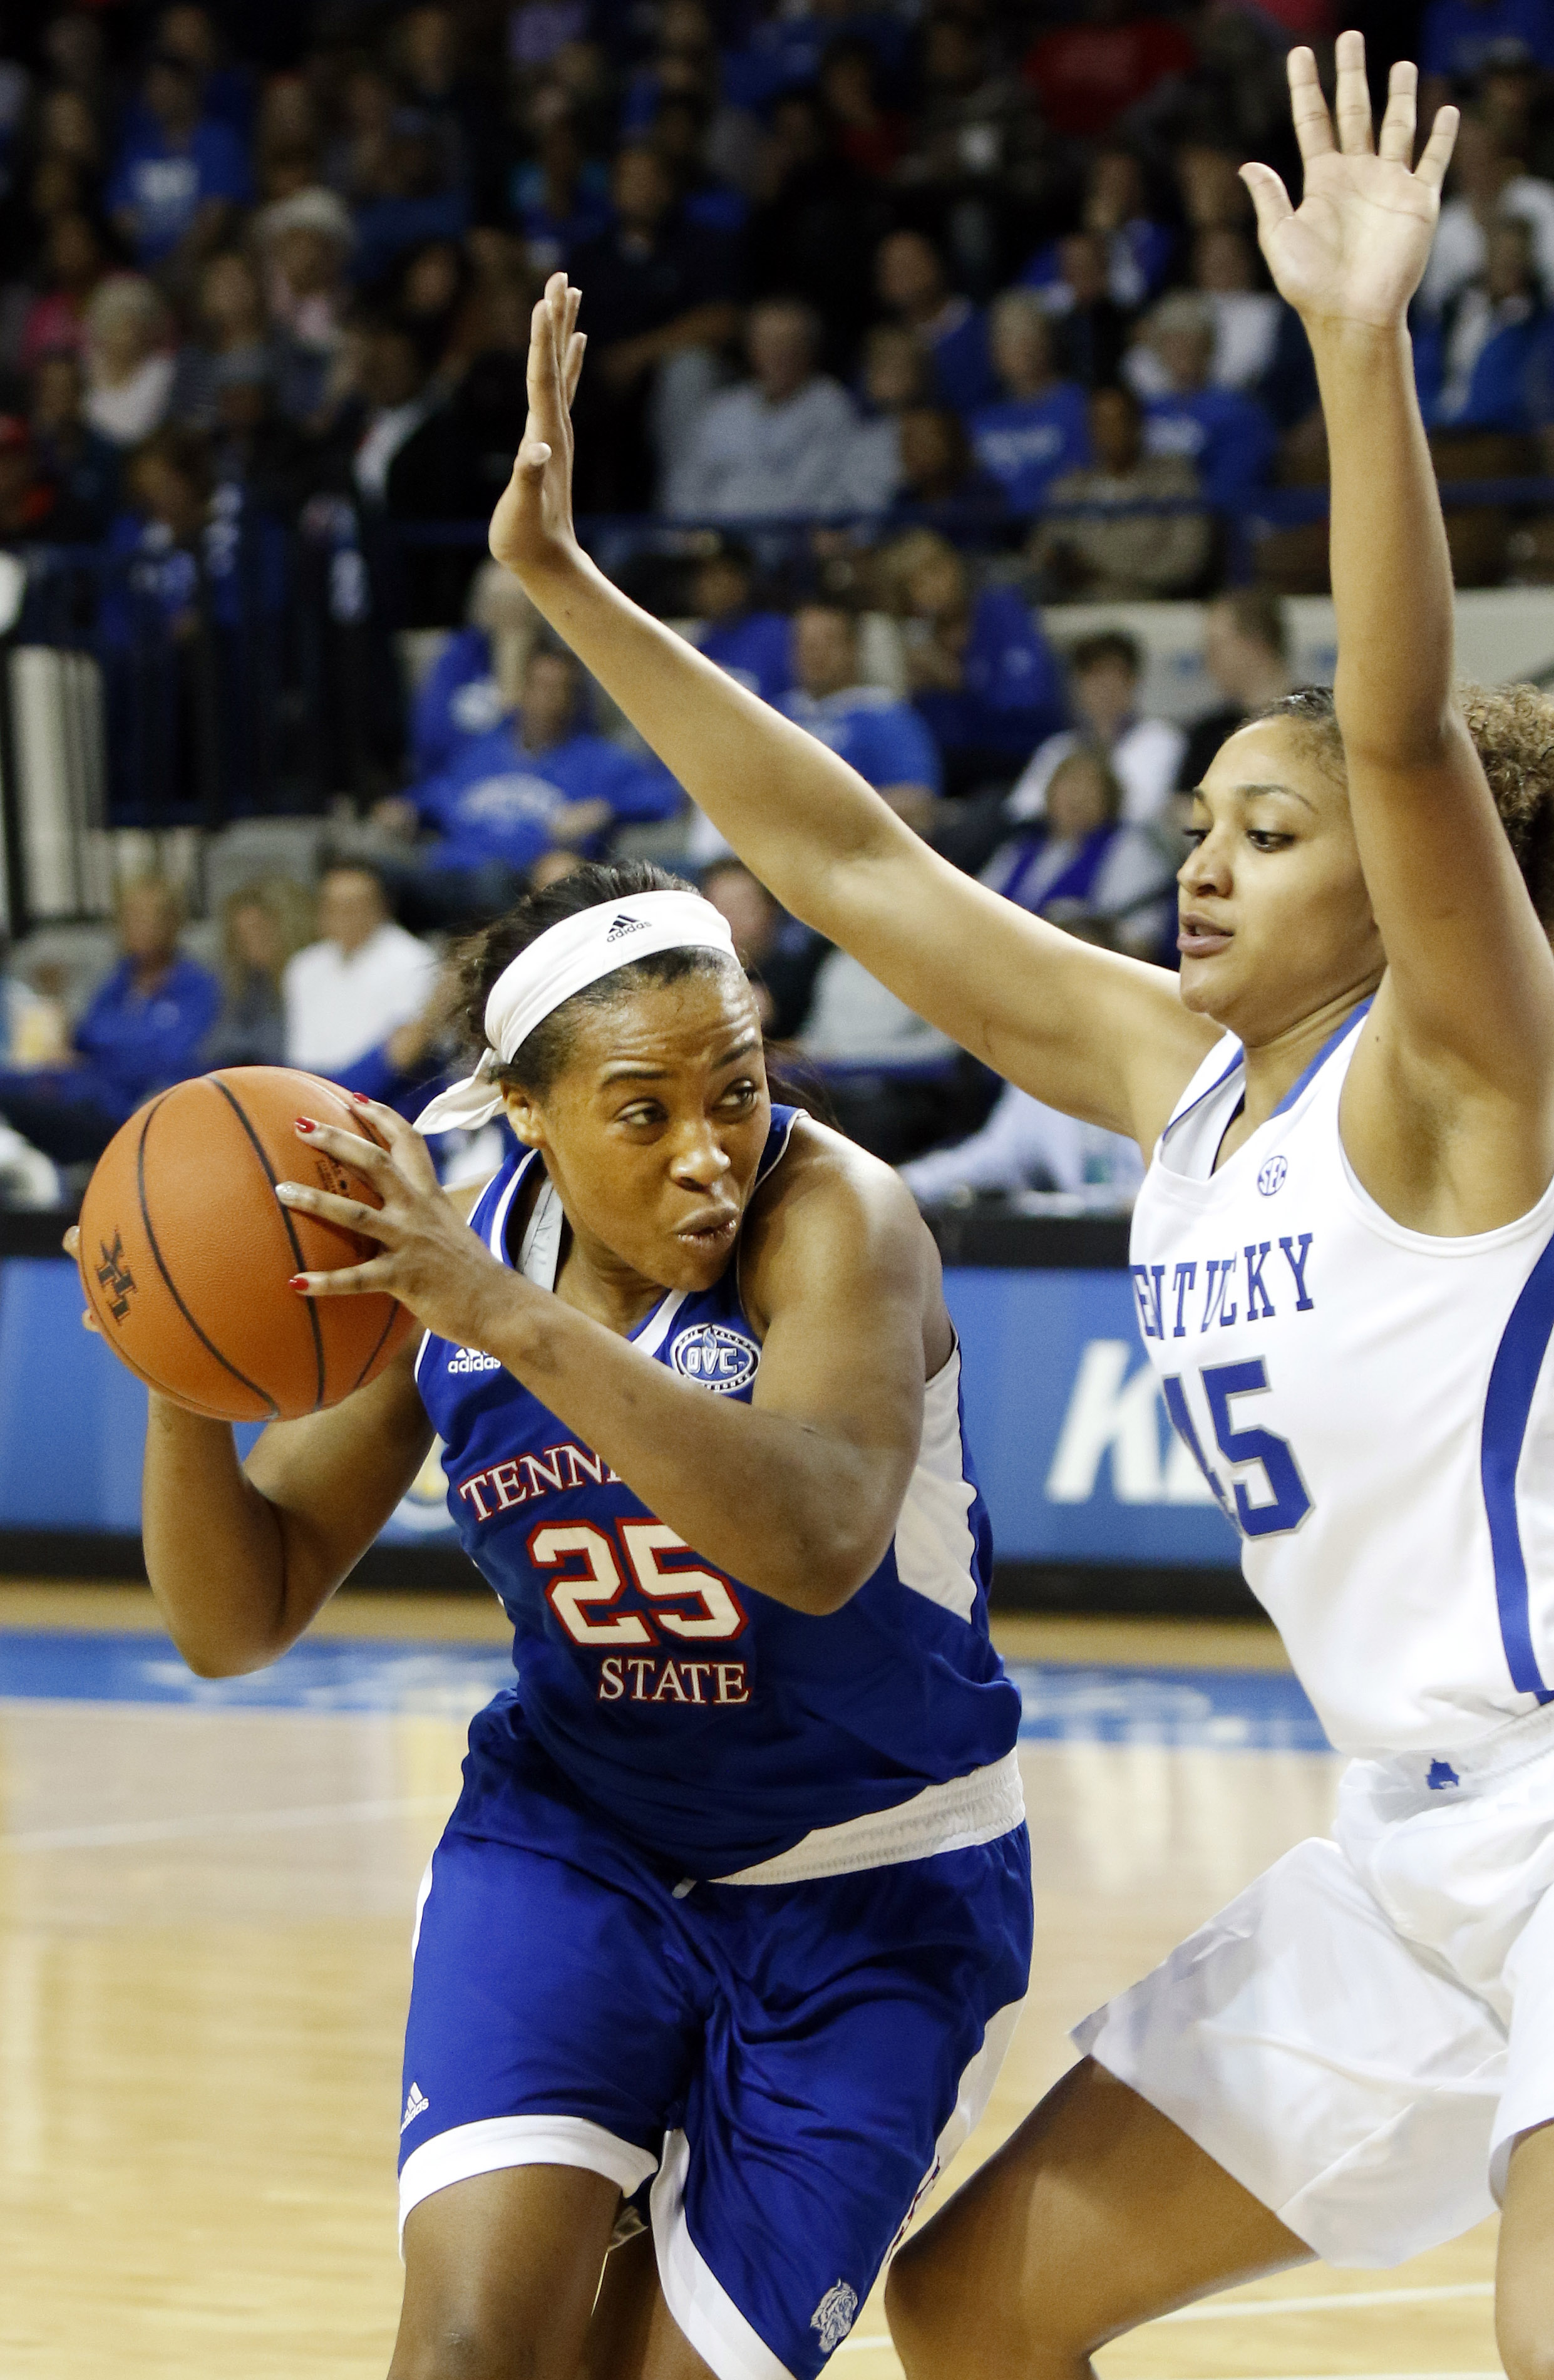 Tennessee State's Jayda Johnson, left, looks for an opening on Kentucky's Alyssa Rice, right, during an NCAA college basketball game Monday, Dec. 28, 2015, in Lexington, Ky. (AP Photo/James Crisp)